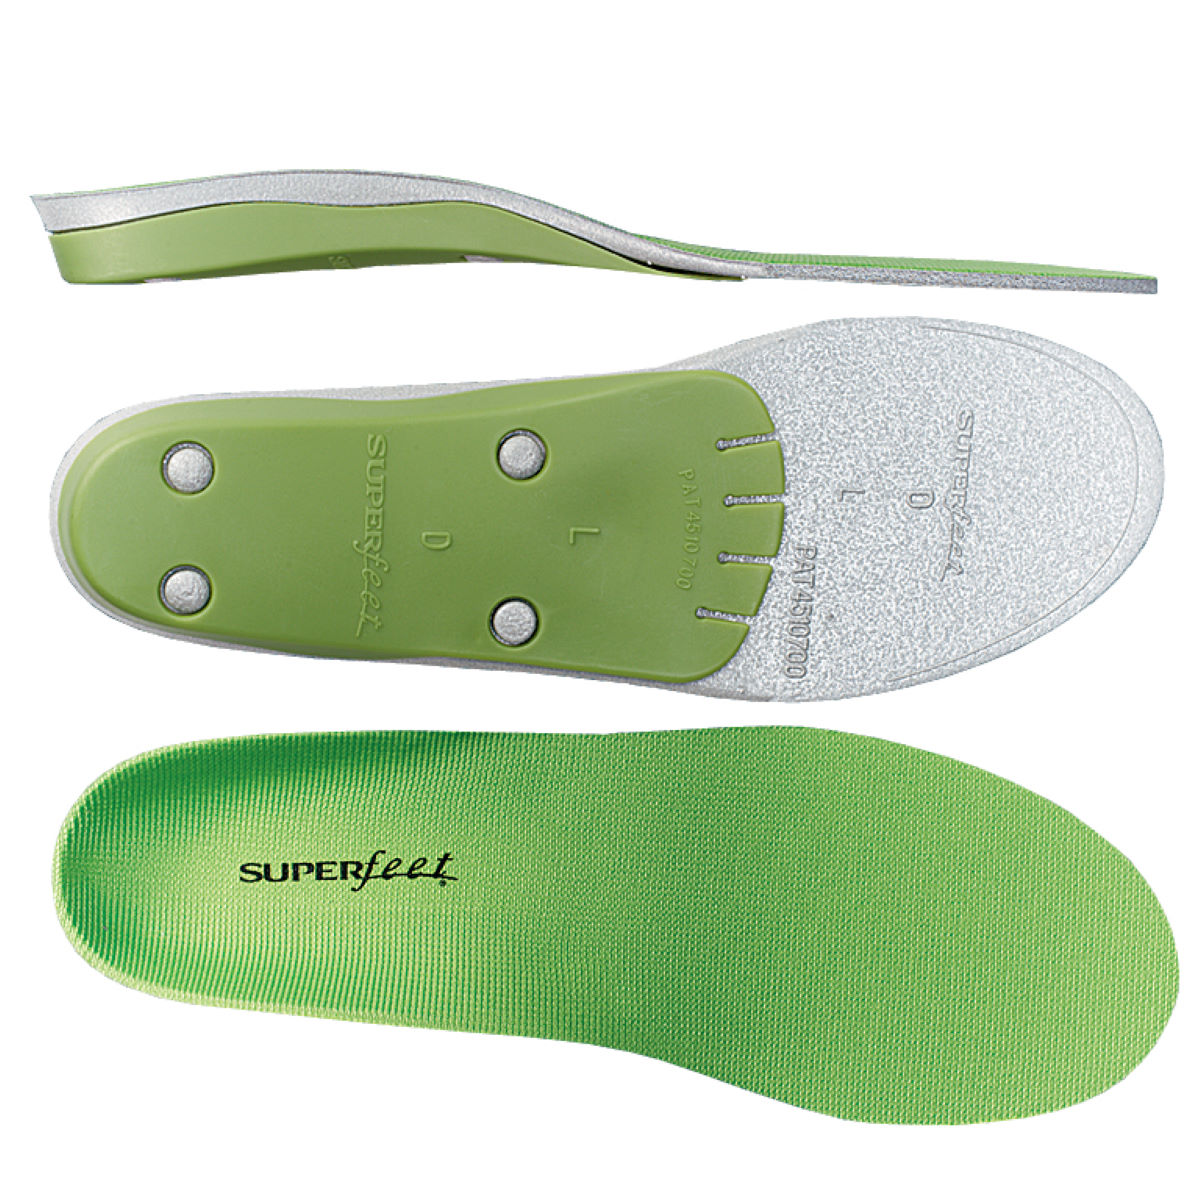 Superfeet Trim to Fit Green Insoles